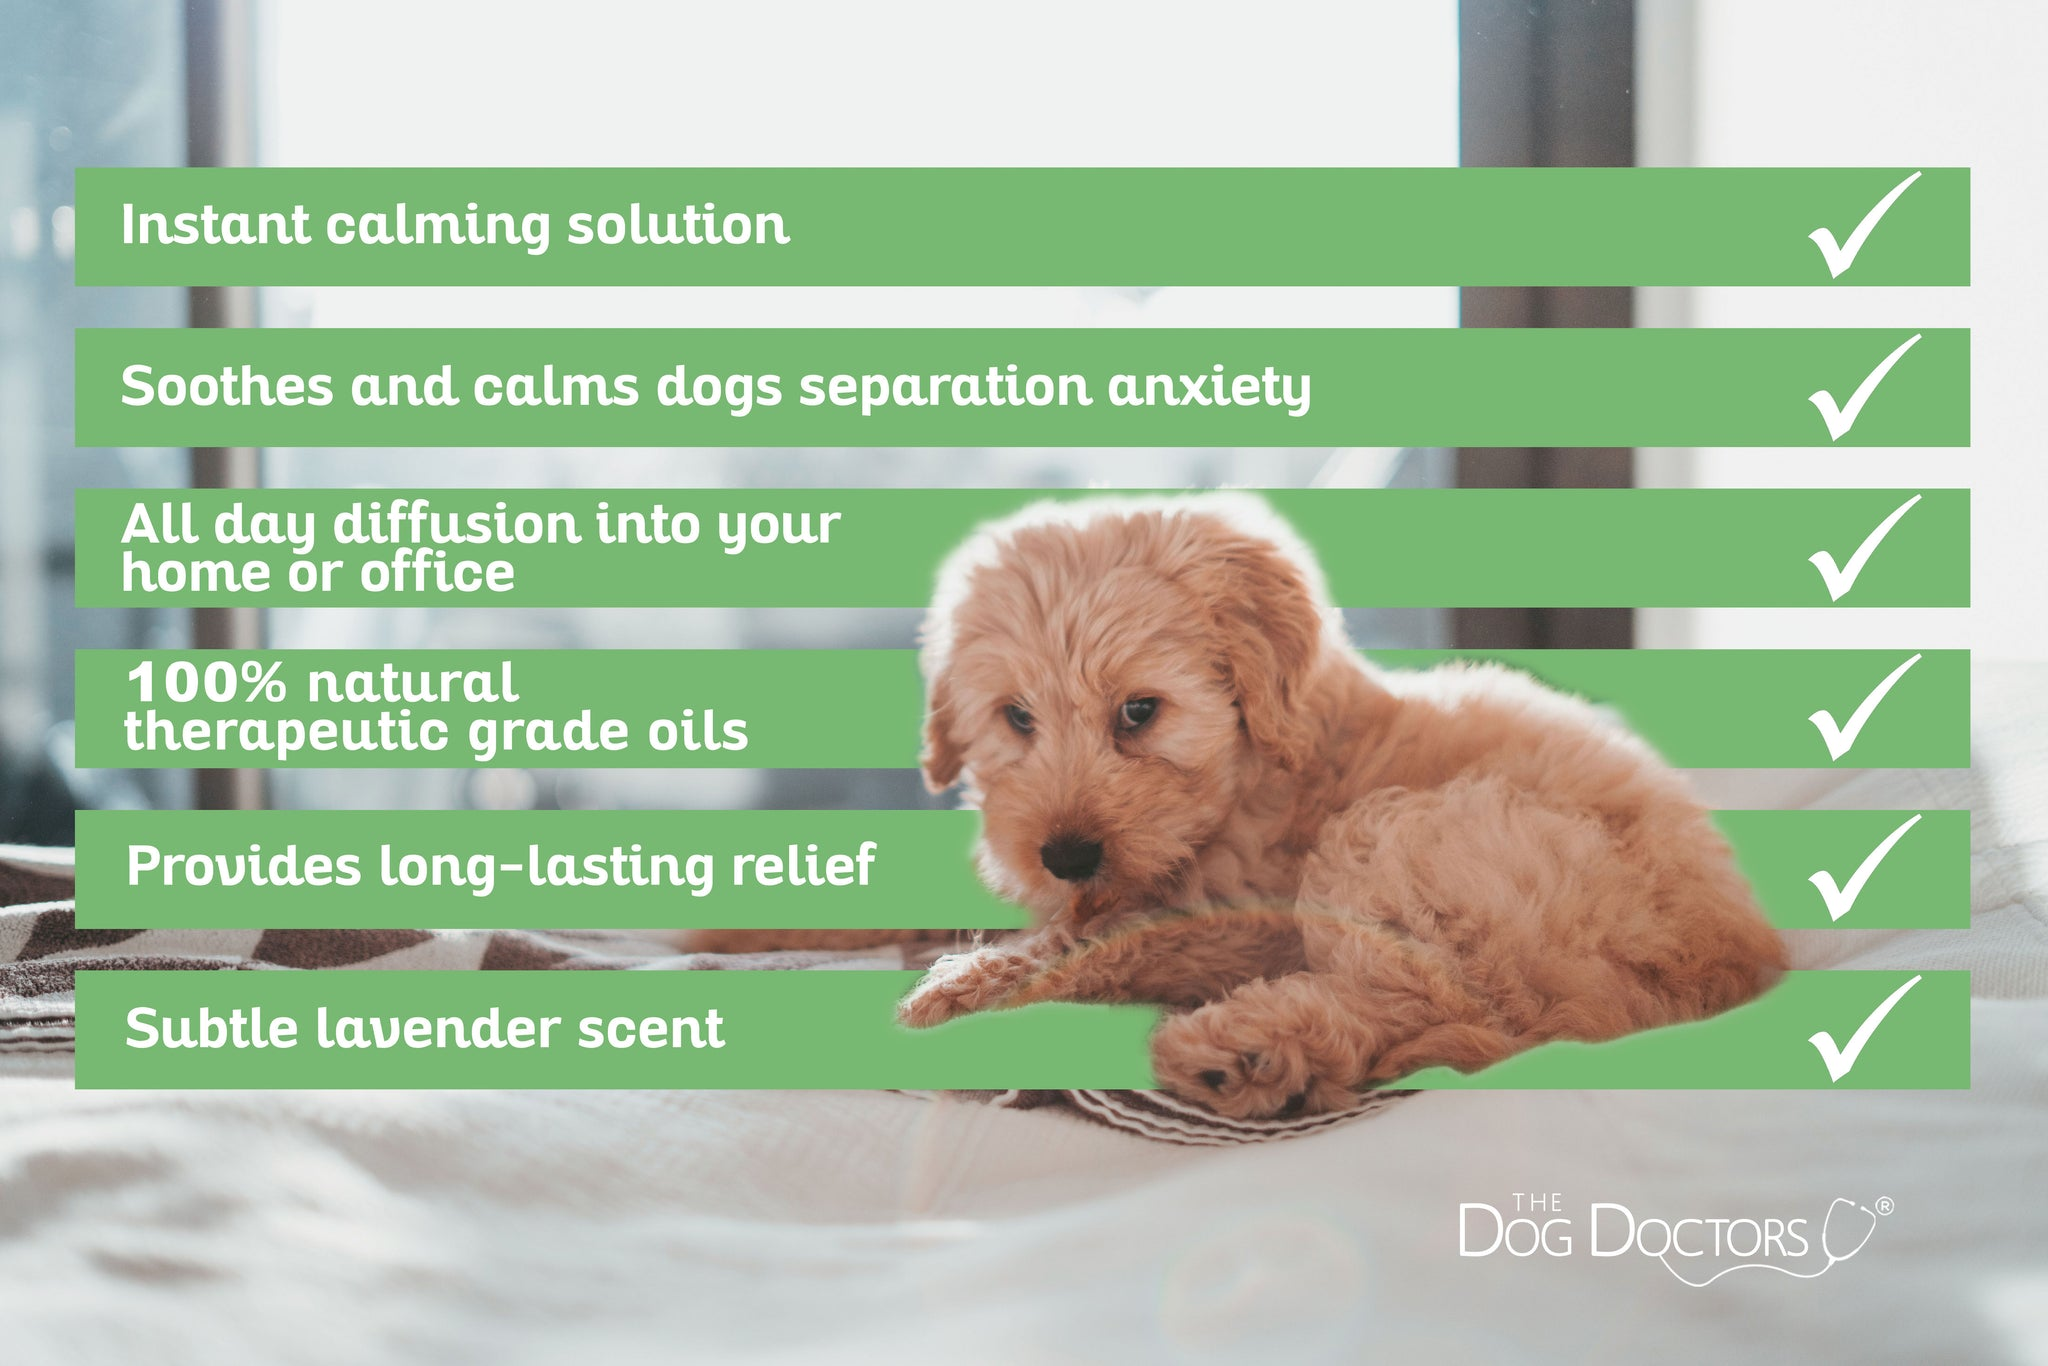 Natural Calm Lavender Diffuser For Dogs The Dog Doctors